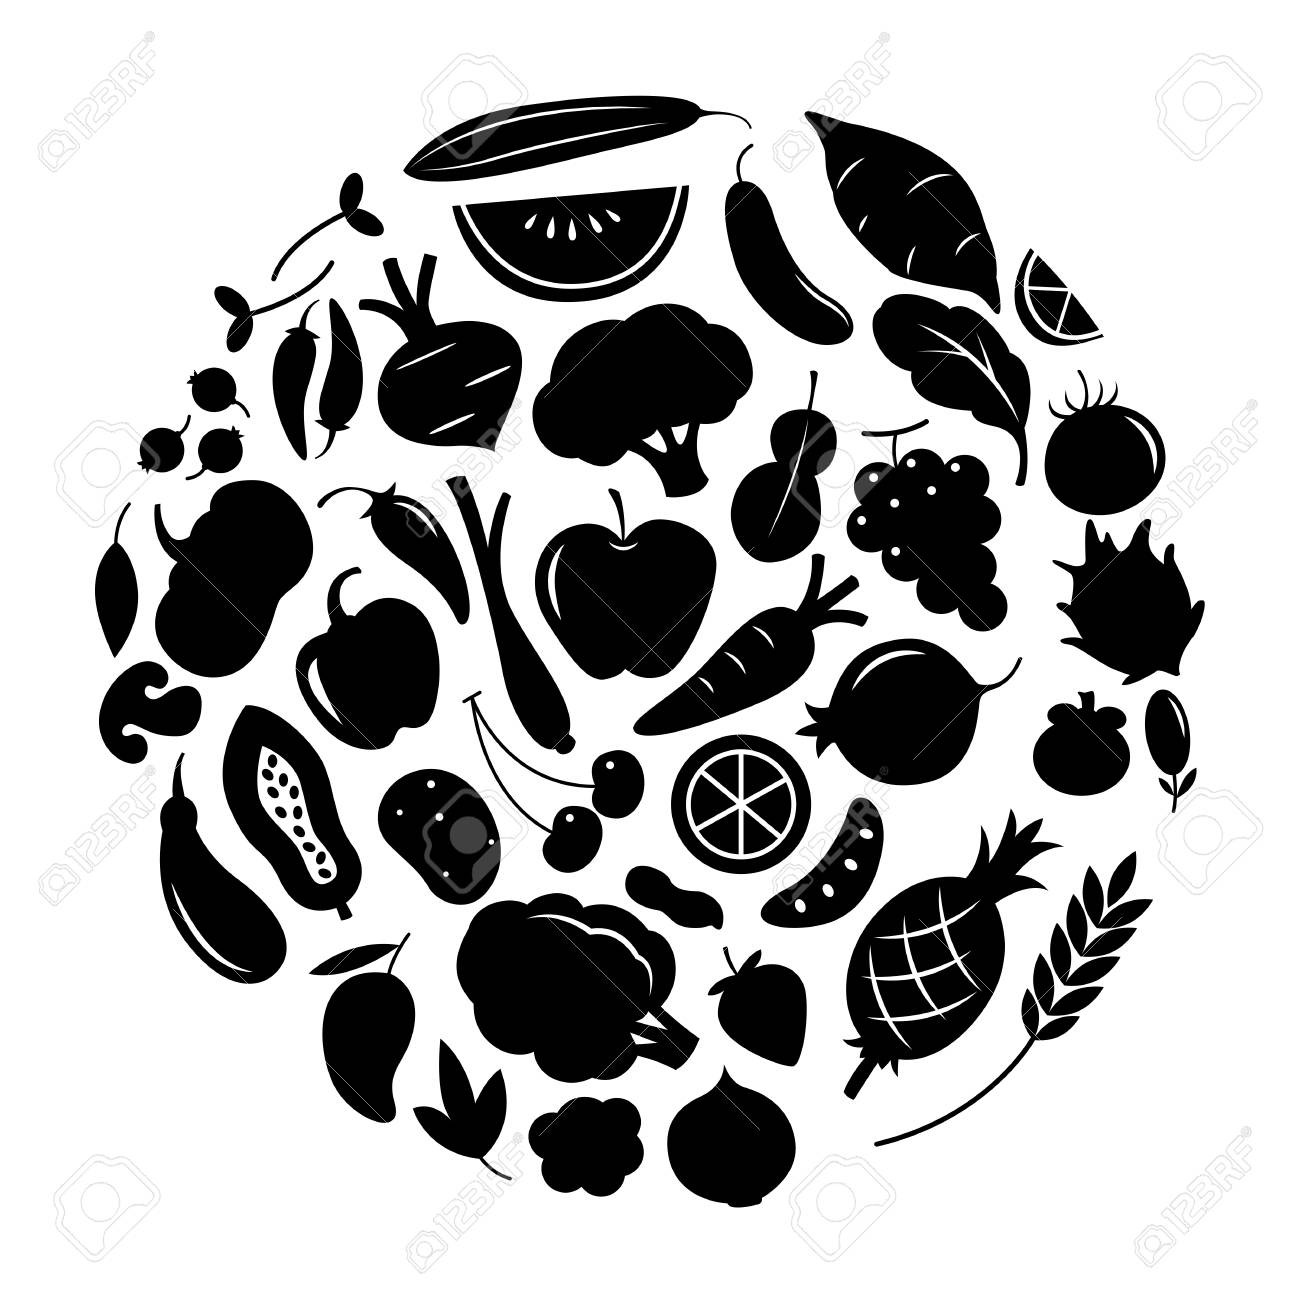 Graphic fruit and vegetable vector illustration black on white background stock vector 98010078